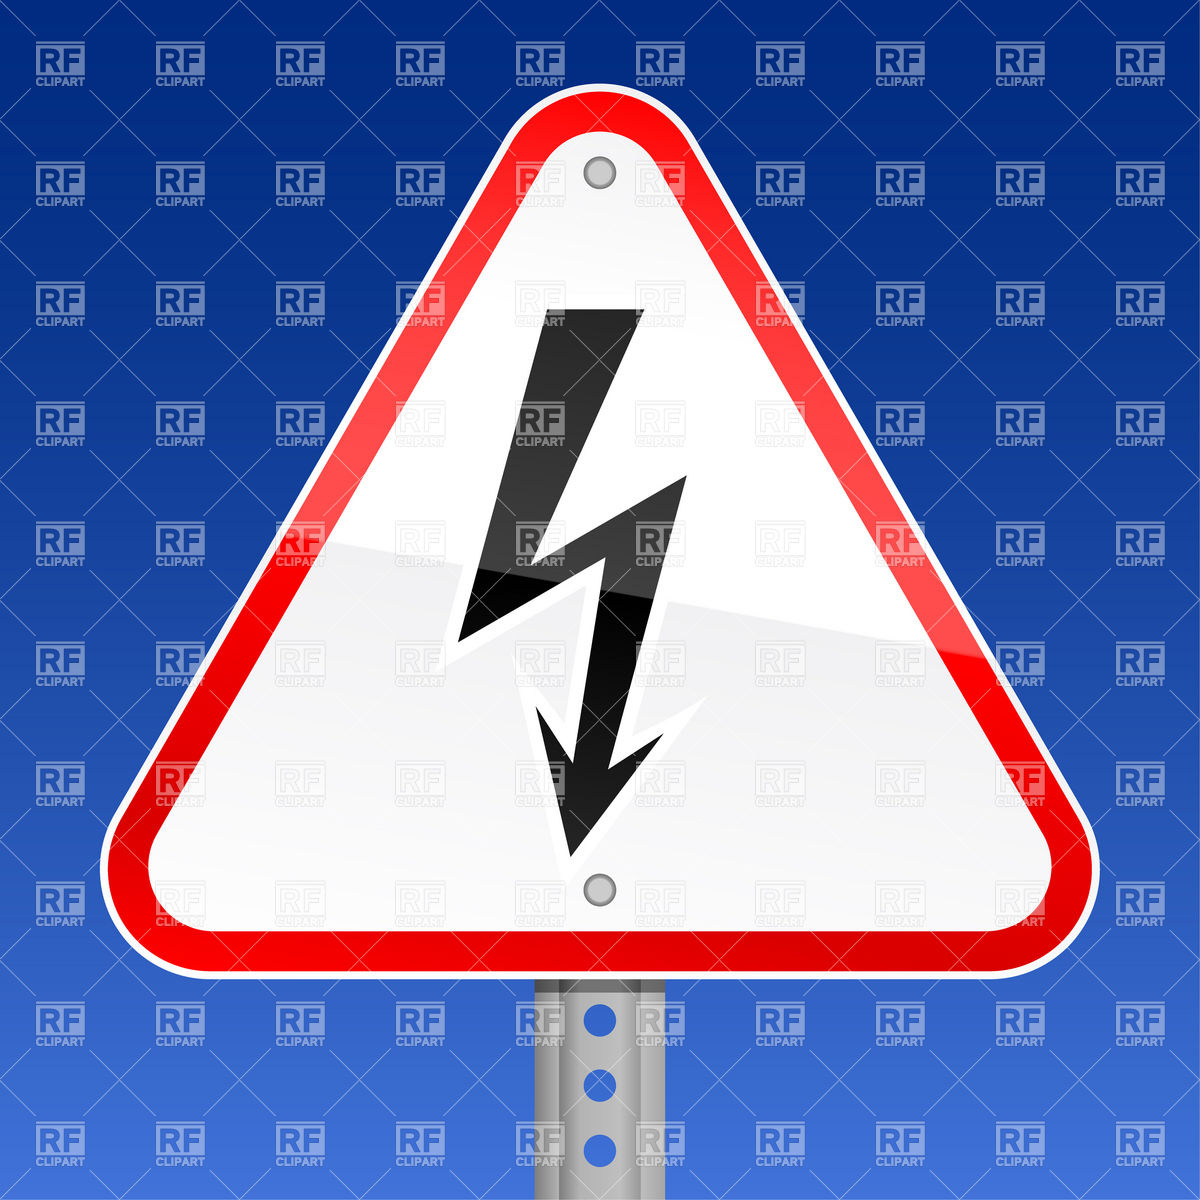 Red road sign with high voltage (lightning) symbol Vector Image.